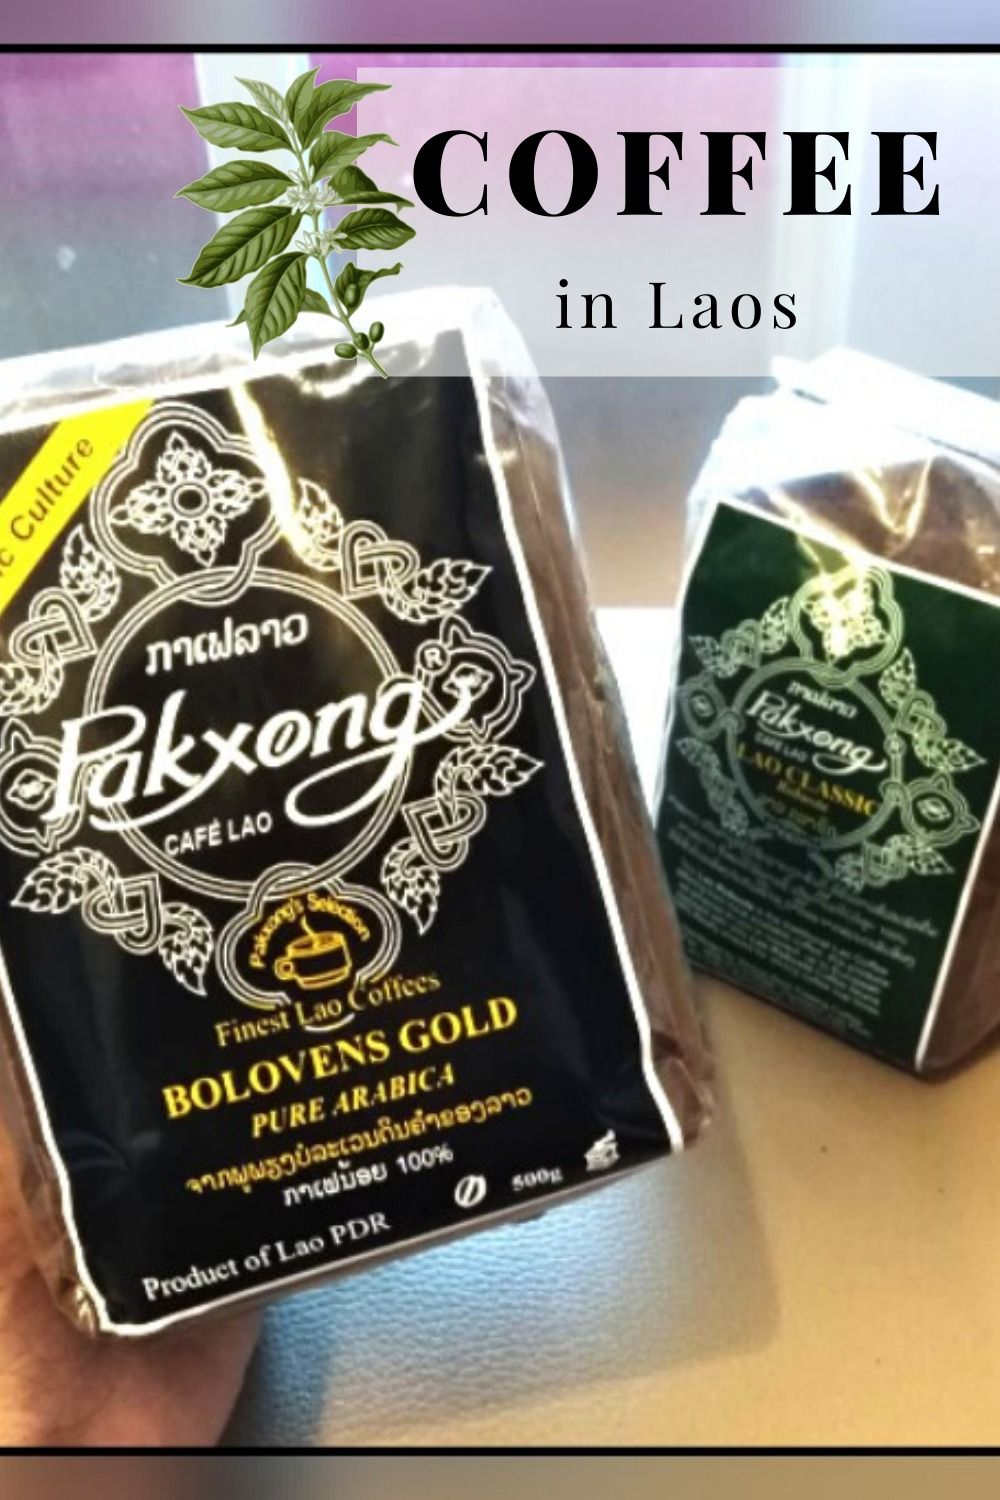 Try Lao Coffee! in 2020 Coffee type, Coffee, Growing coffee